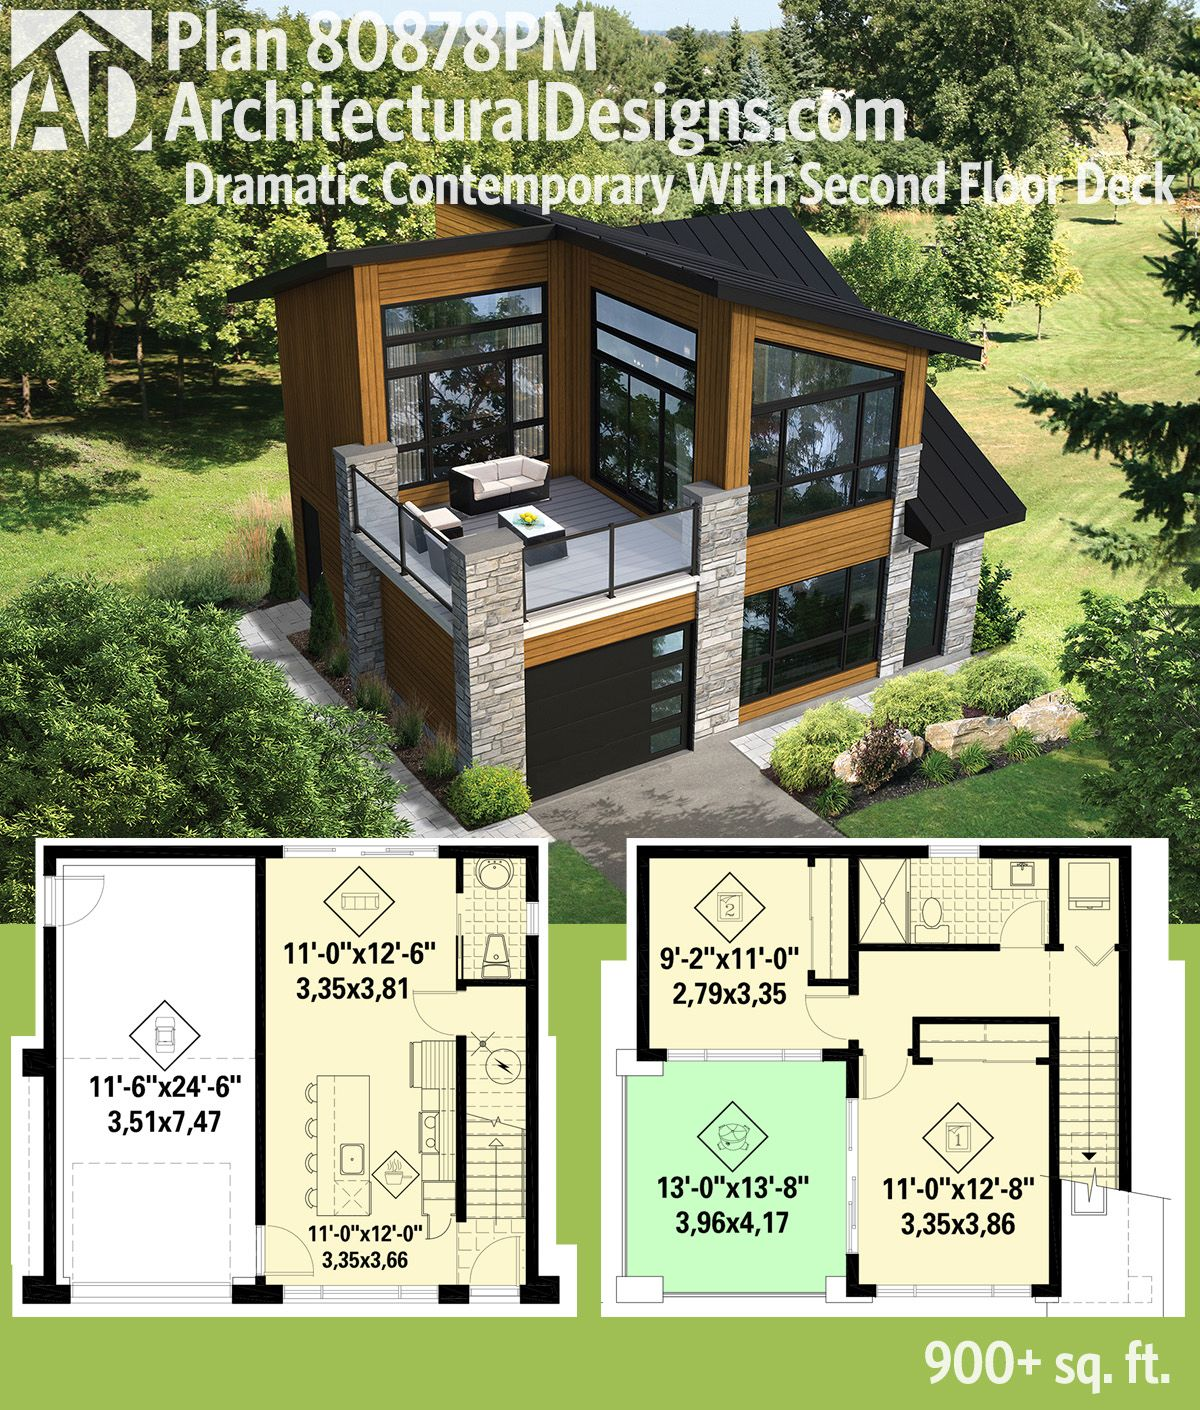 Tiny House With Garage Plans Plan 80878pm Dramatic Contemporary With Second Floor Deck Tiny